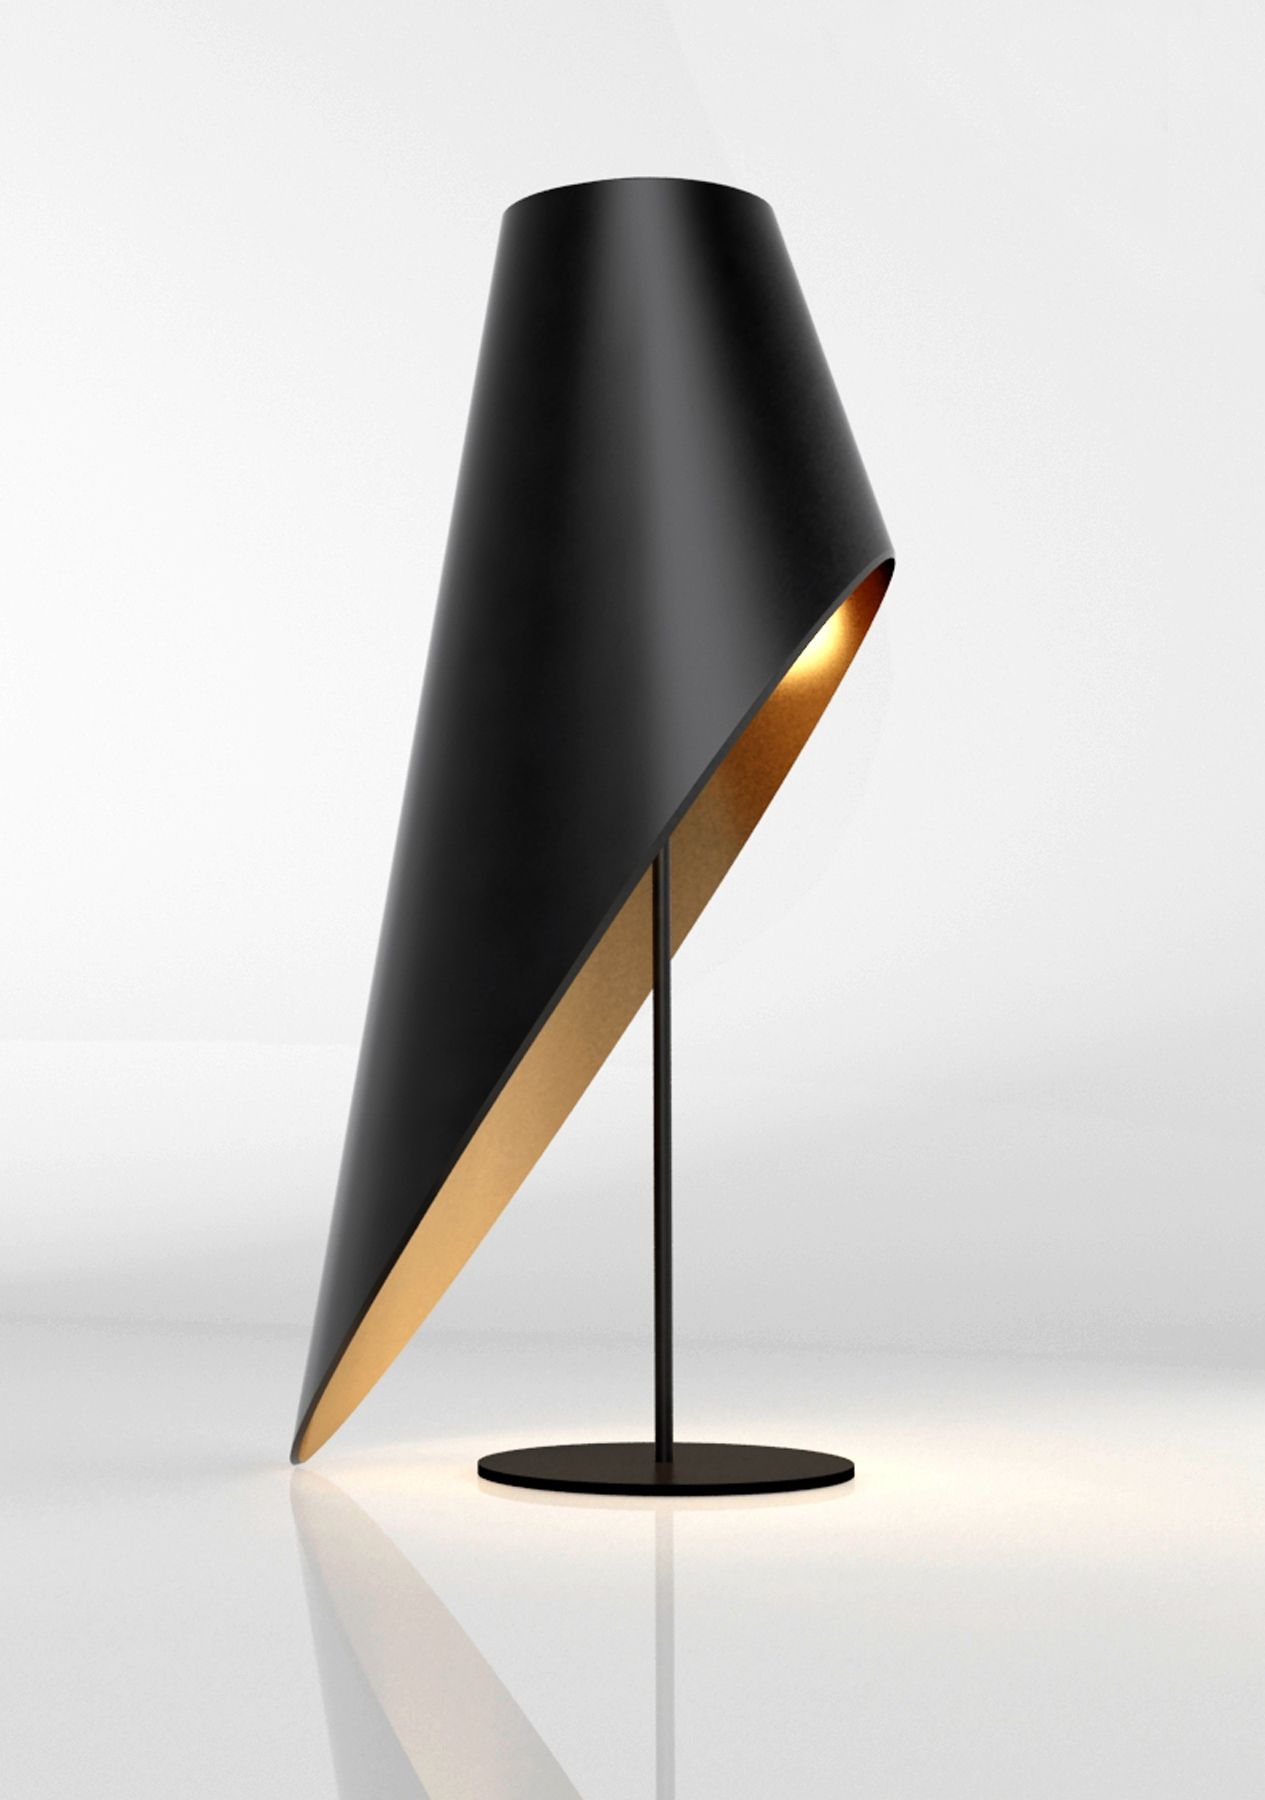 Intrigue lamp light pinterest moscow intrigue one of my favorite light structure out there by andrey dokuchaev via industrial design served sample wall lights design mozeypictures Choice Image